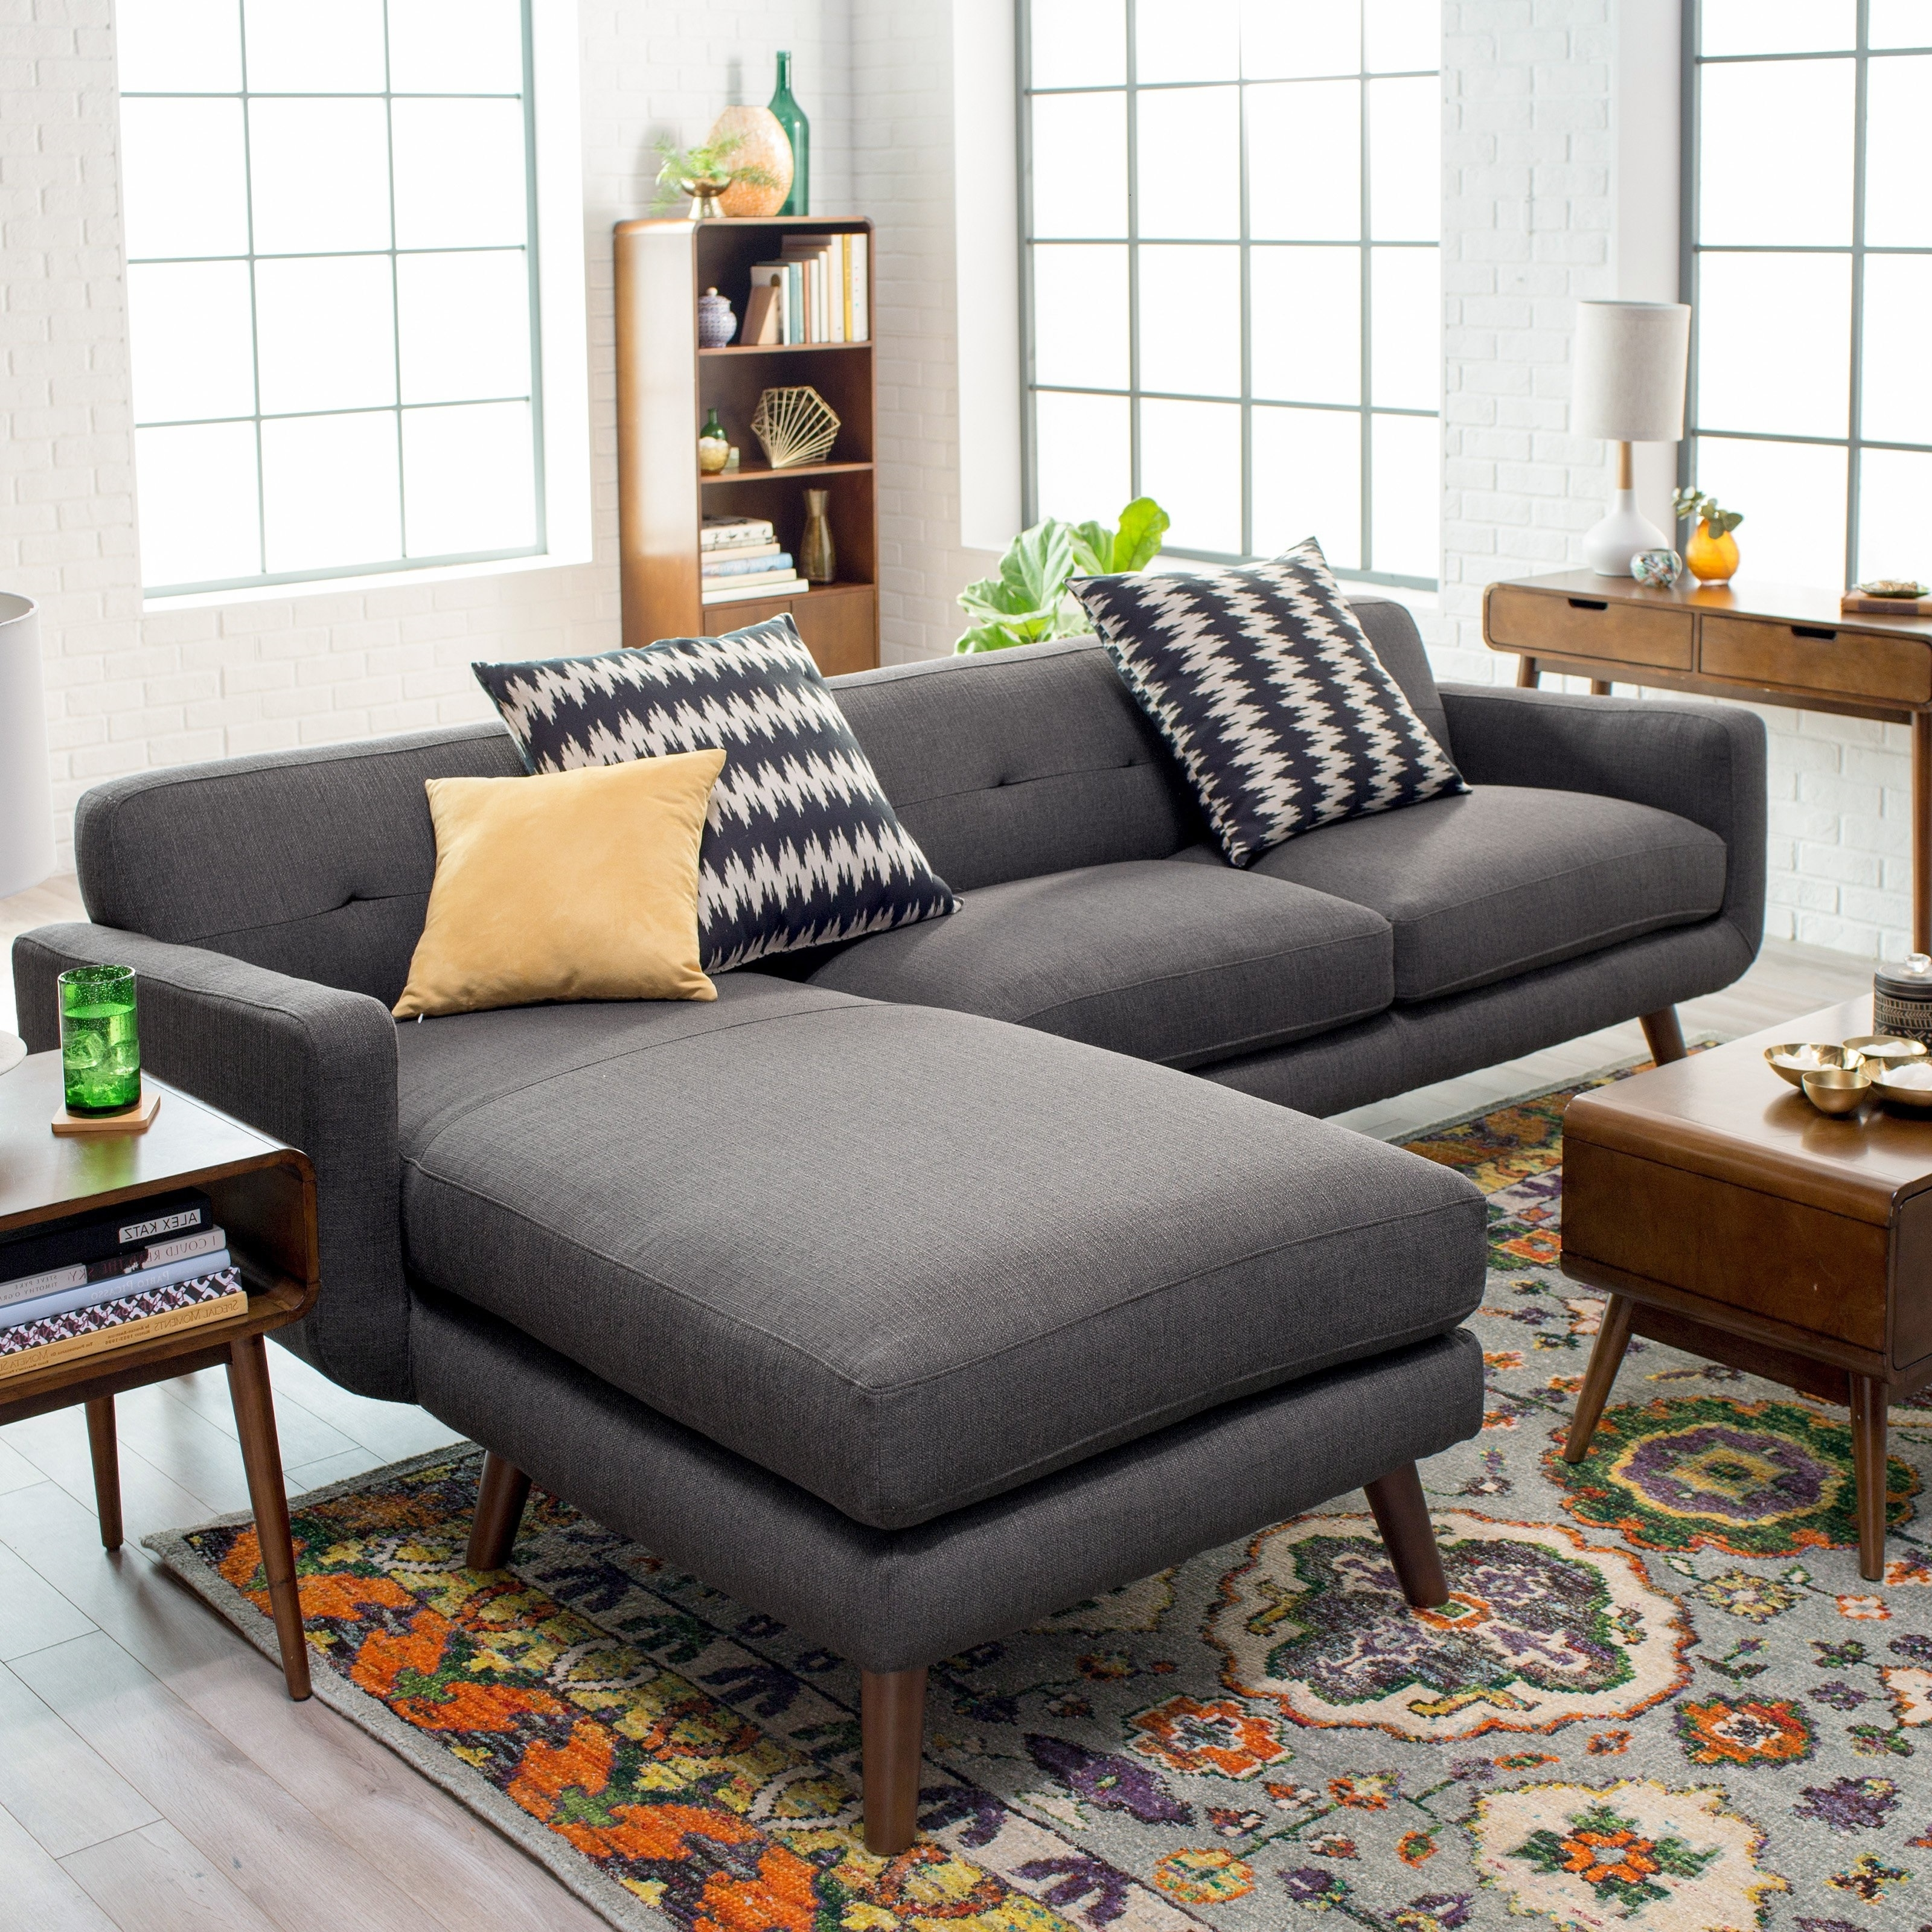 Living Room Furniture : Outdoor Sectional Sofa Sectional Sofas Within 2017 Kitchener Sectional Sofas (View 6 of 15)